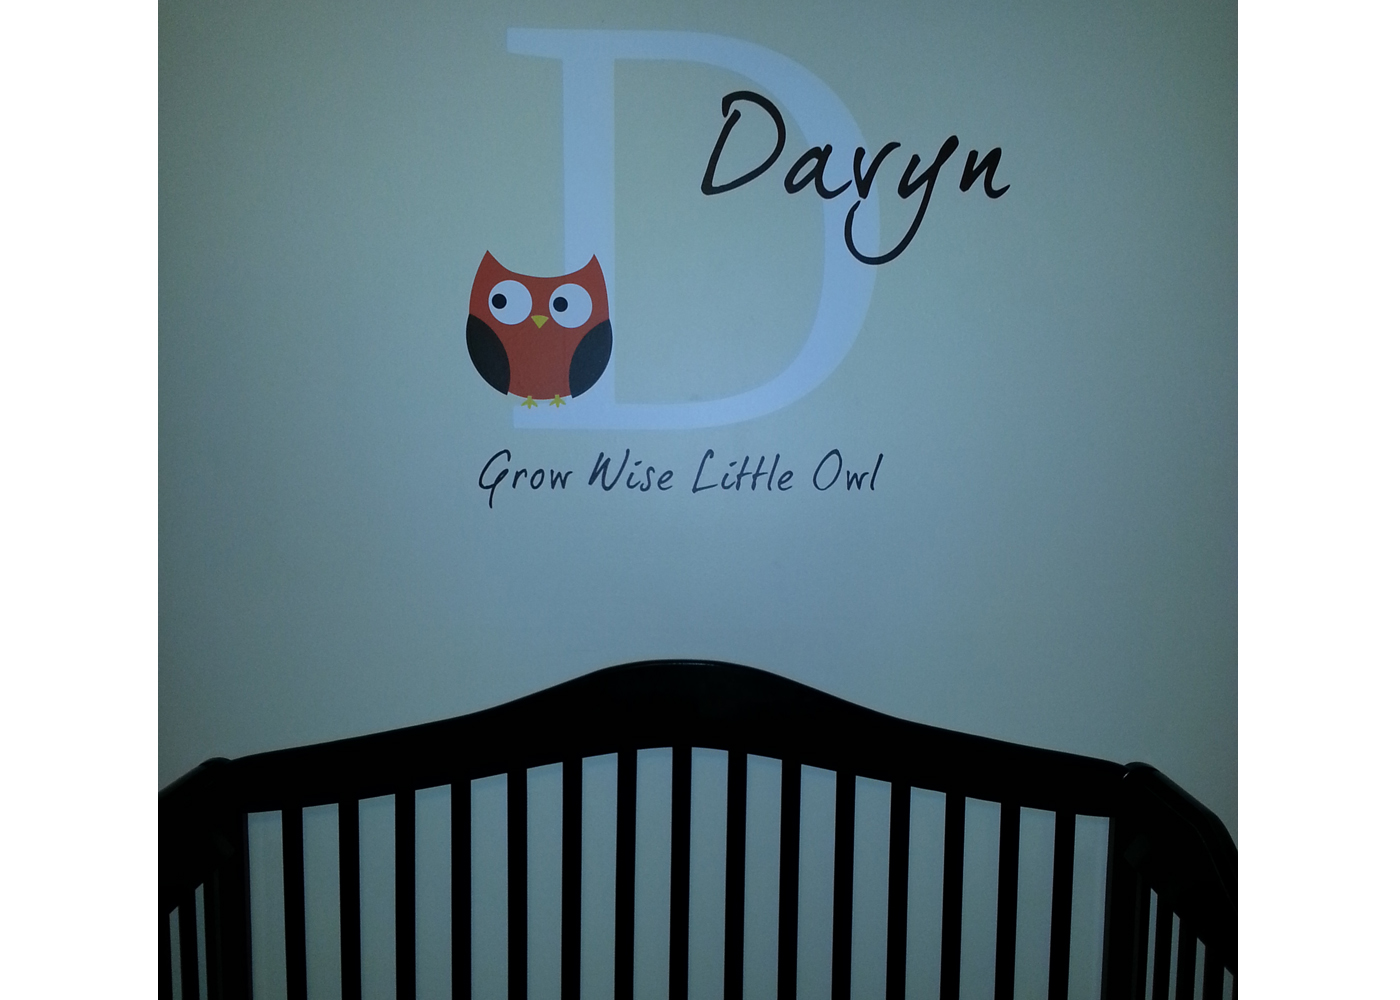 owl-name-vinyl-wall-decal-sticker.jpg